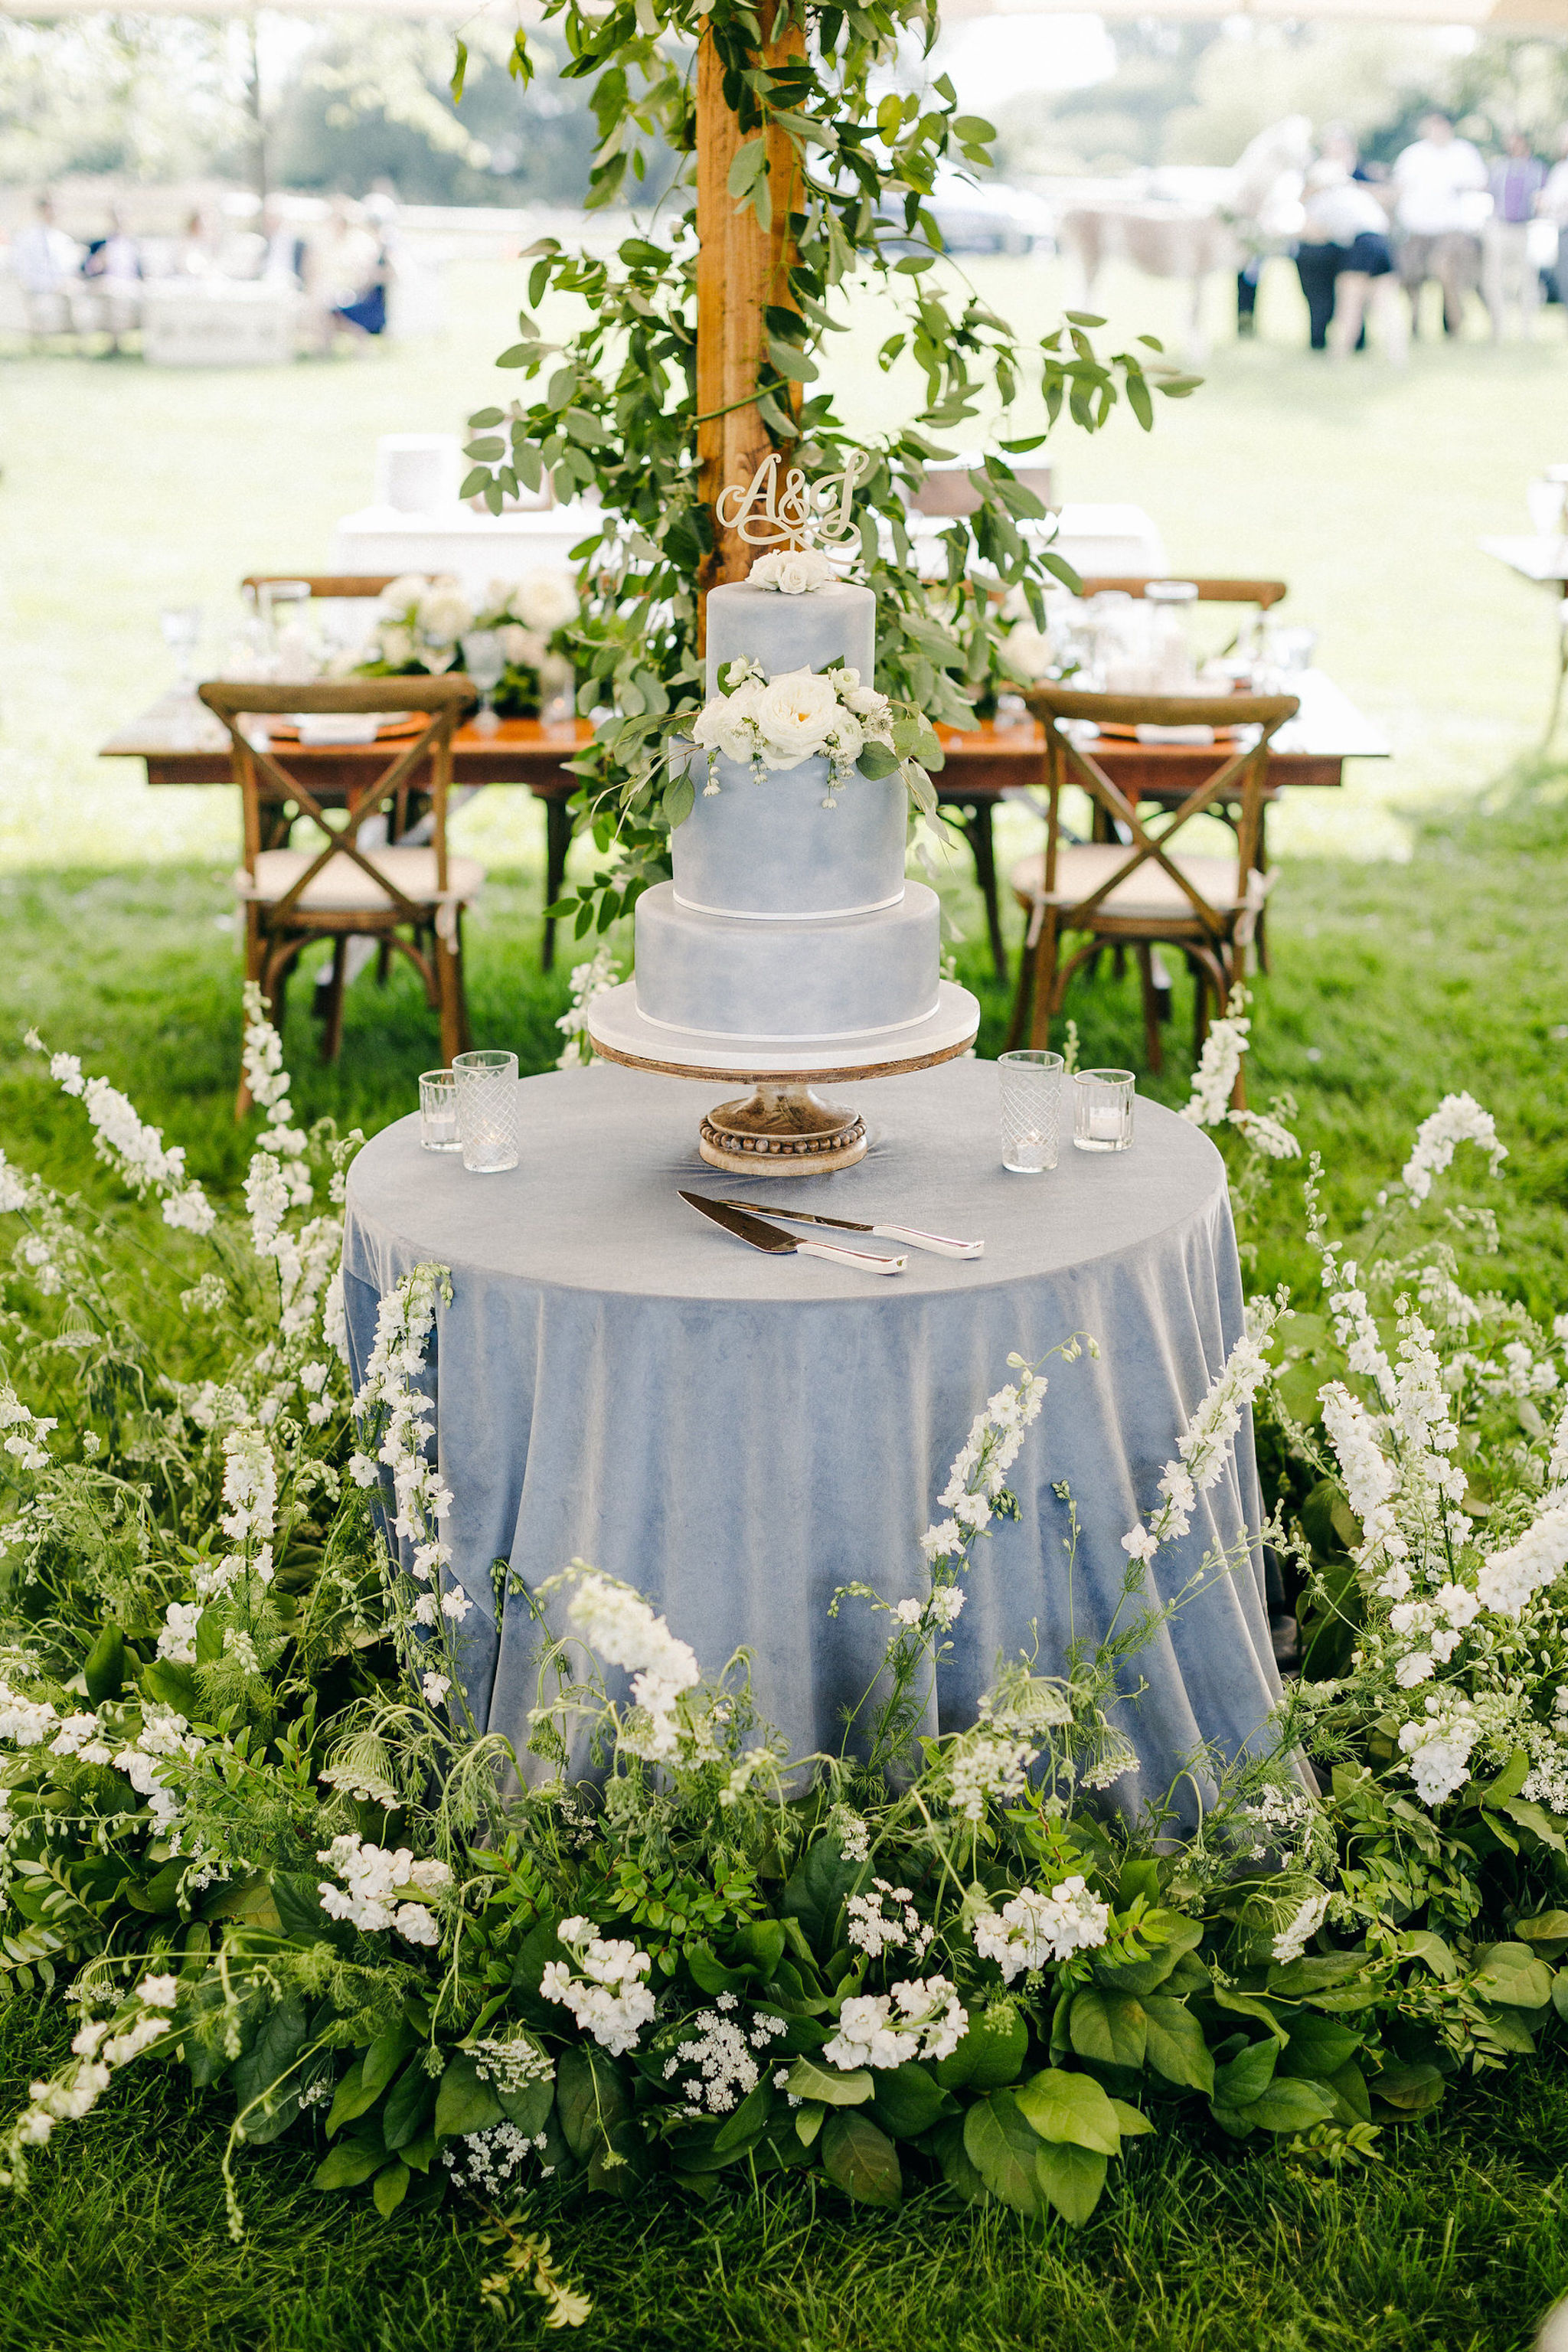 custom wedding planner ann arbor michigan event design florals bridesmaids bouquets farm outdoor sail tent cake table